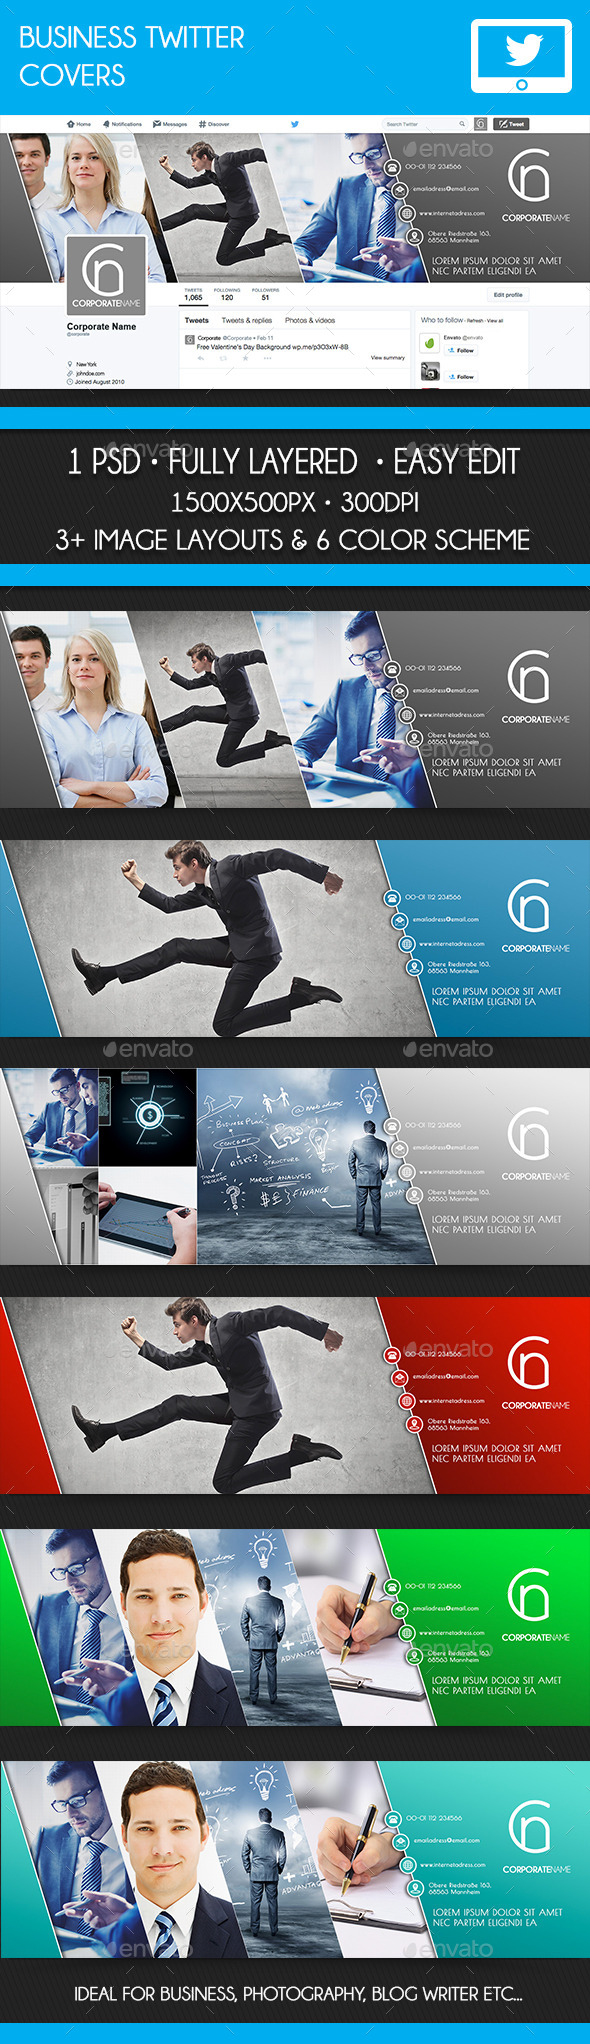 GraphicRiver Twitter Business Covers 10481546